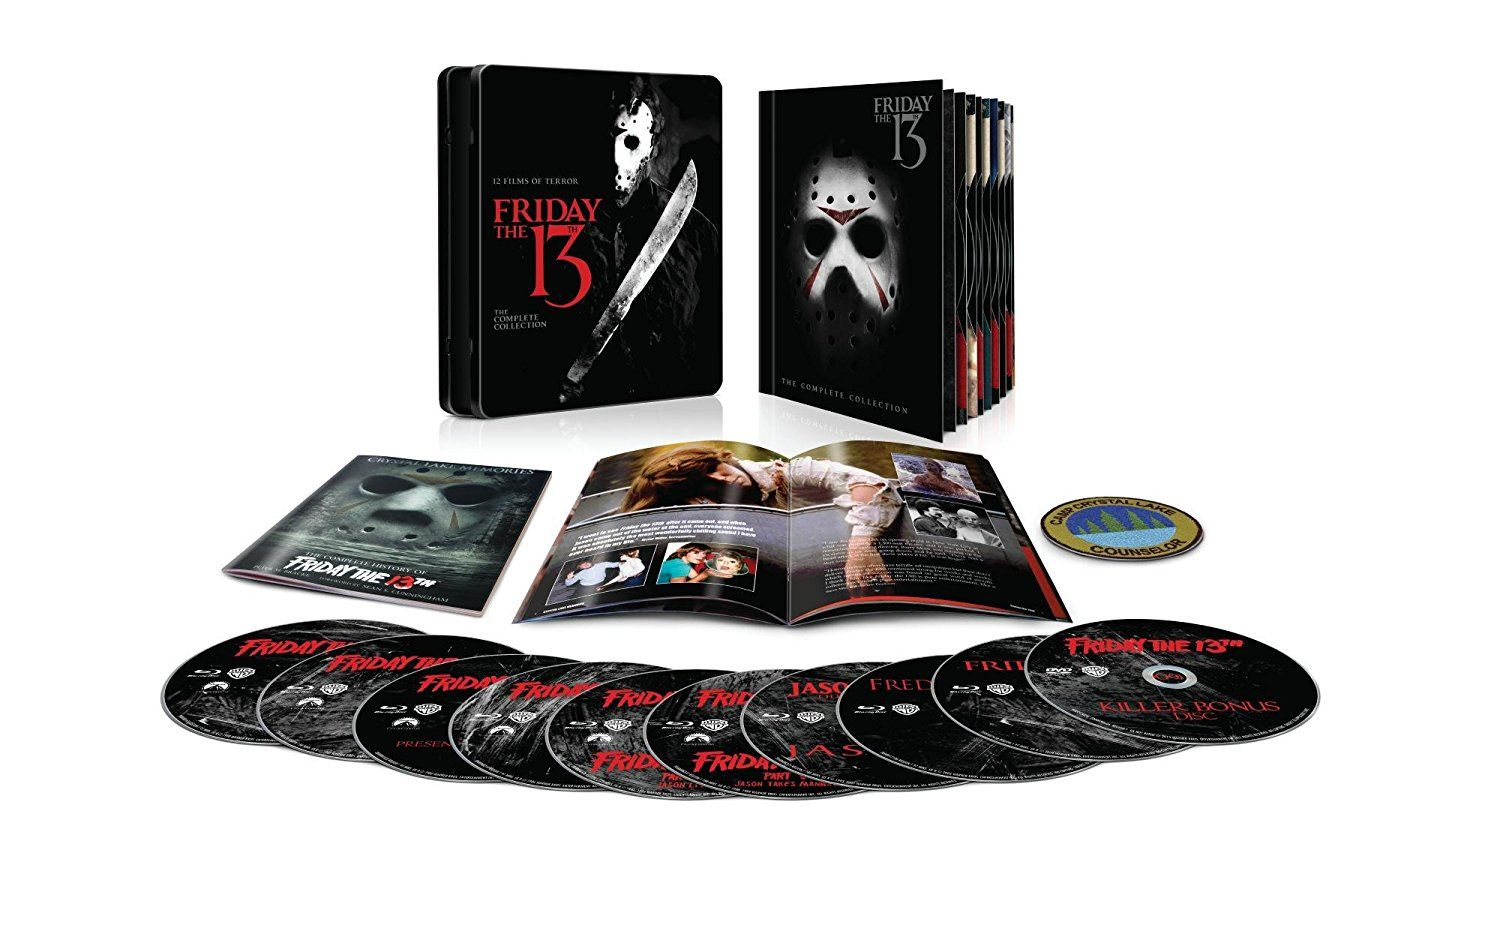 Halloween Blu Ray Box Set.Friday The 13th The Complete Collection Blu Ray Friday